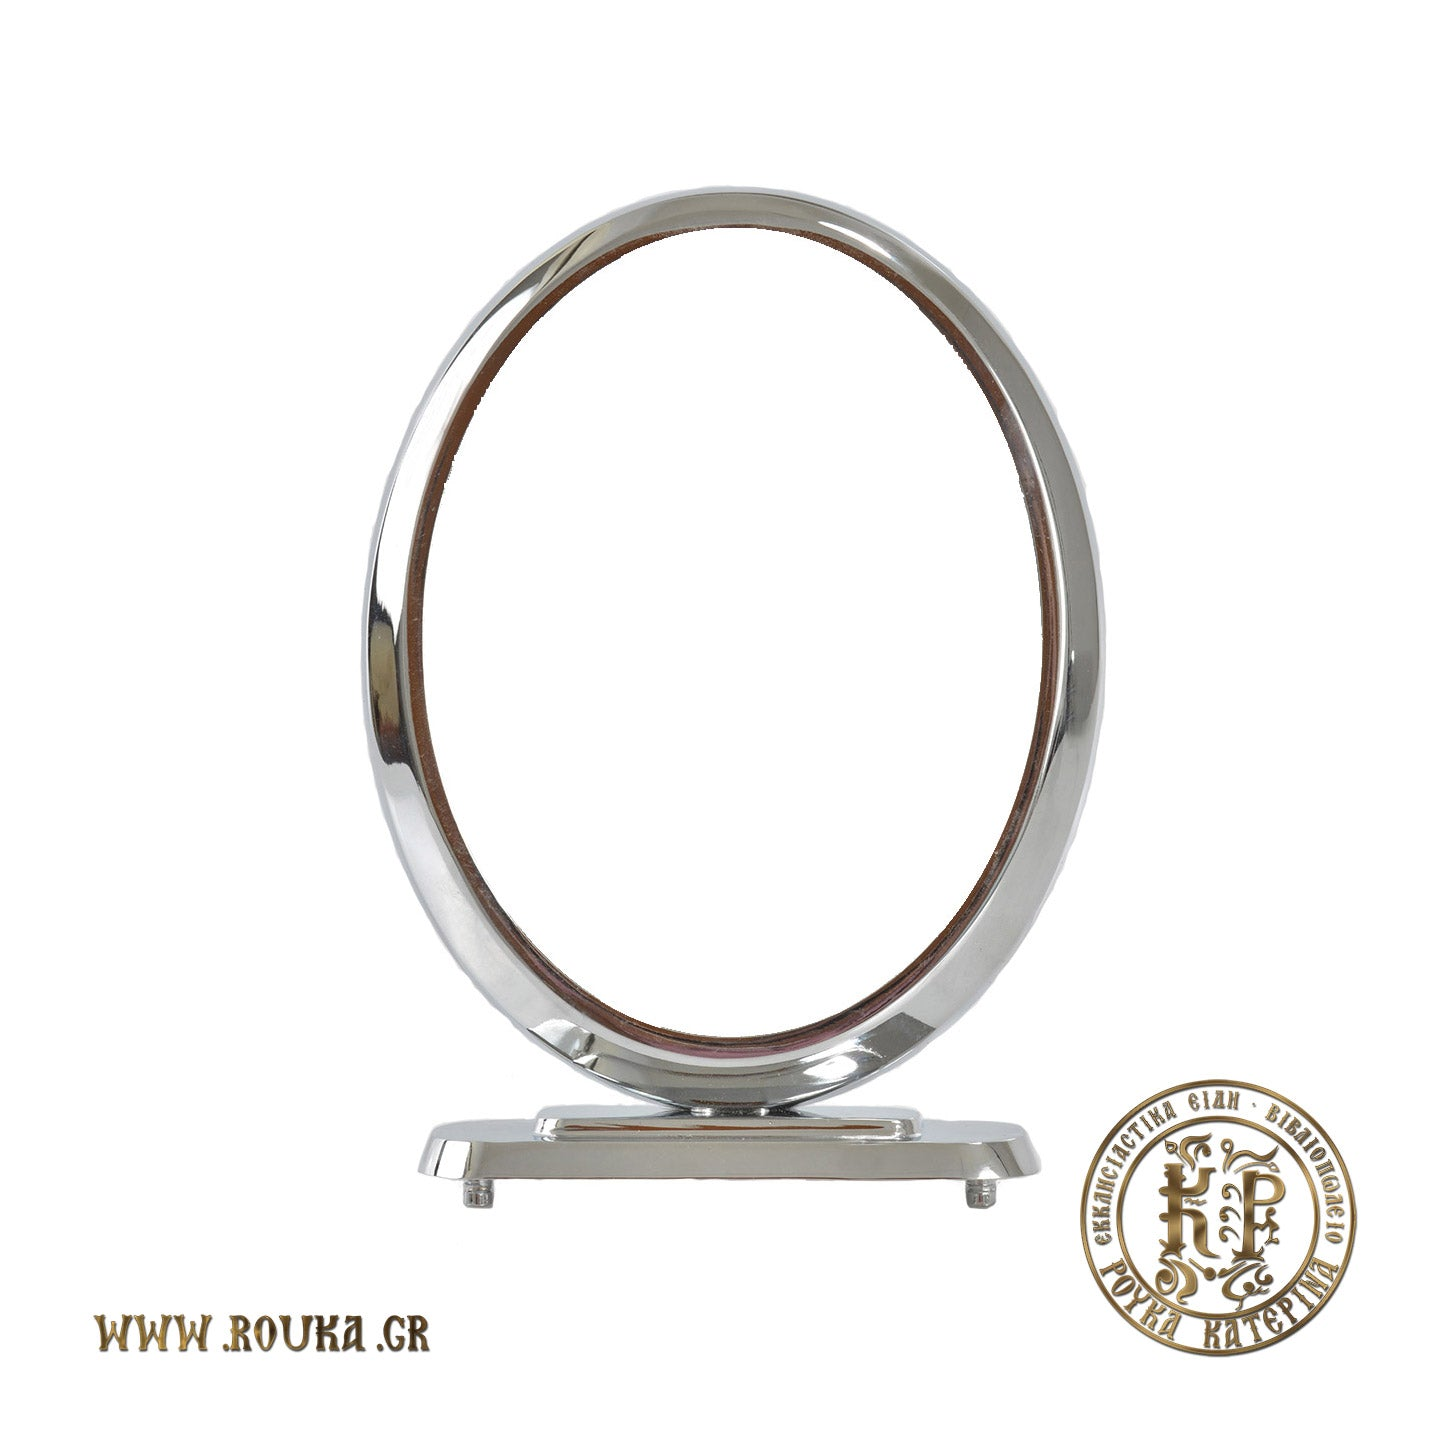 Sleek Frame with Oval Base